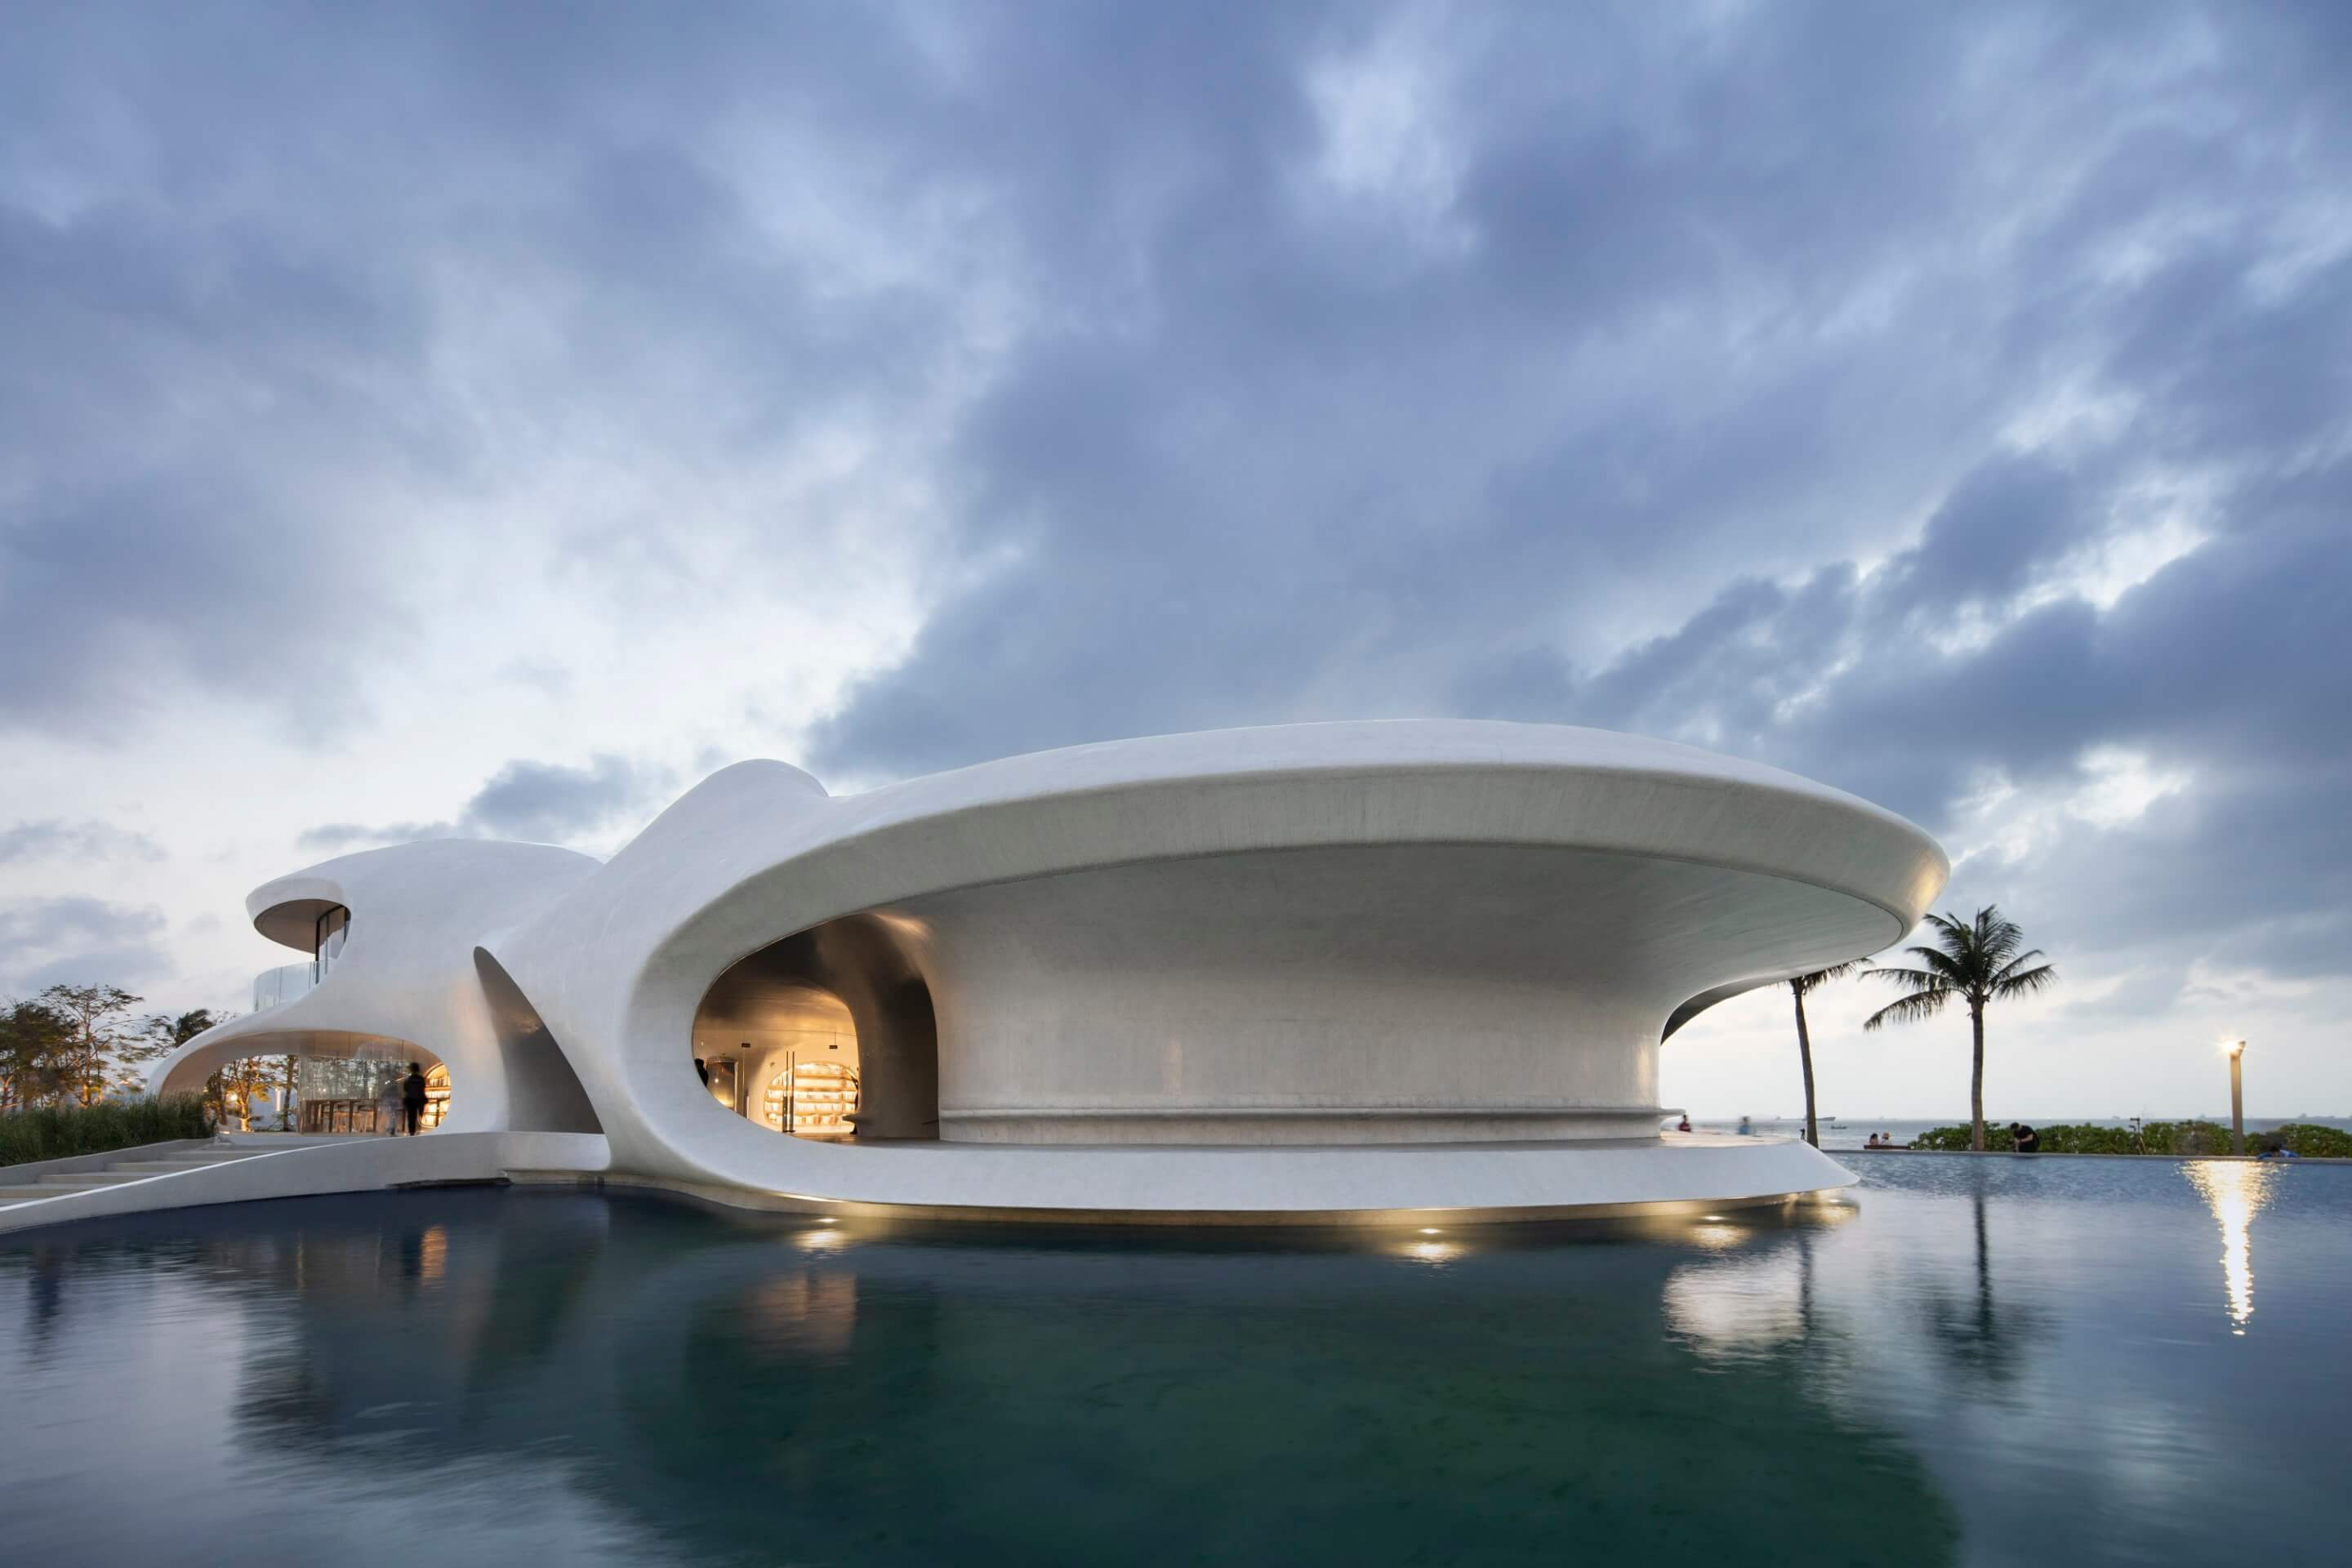 sinuous concrete form of the open terrace facing the water